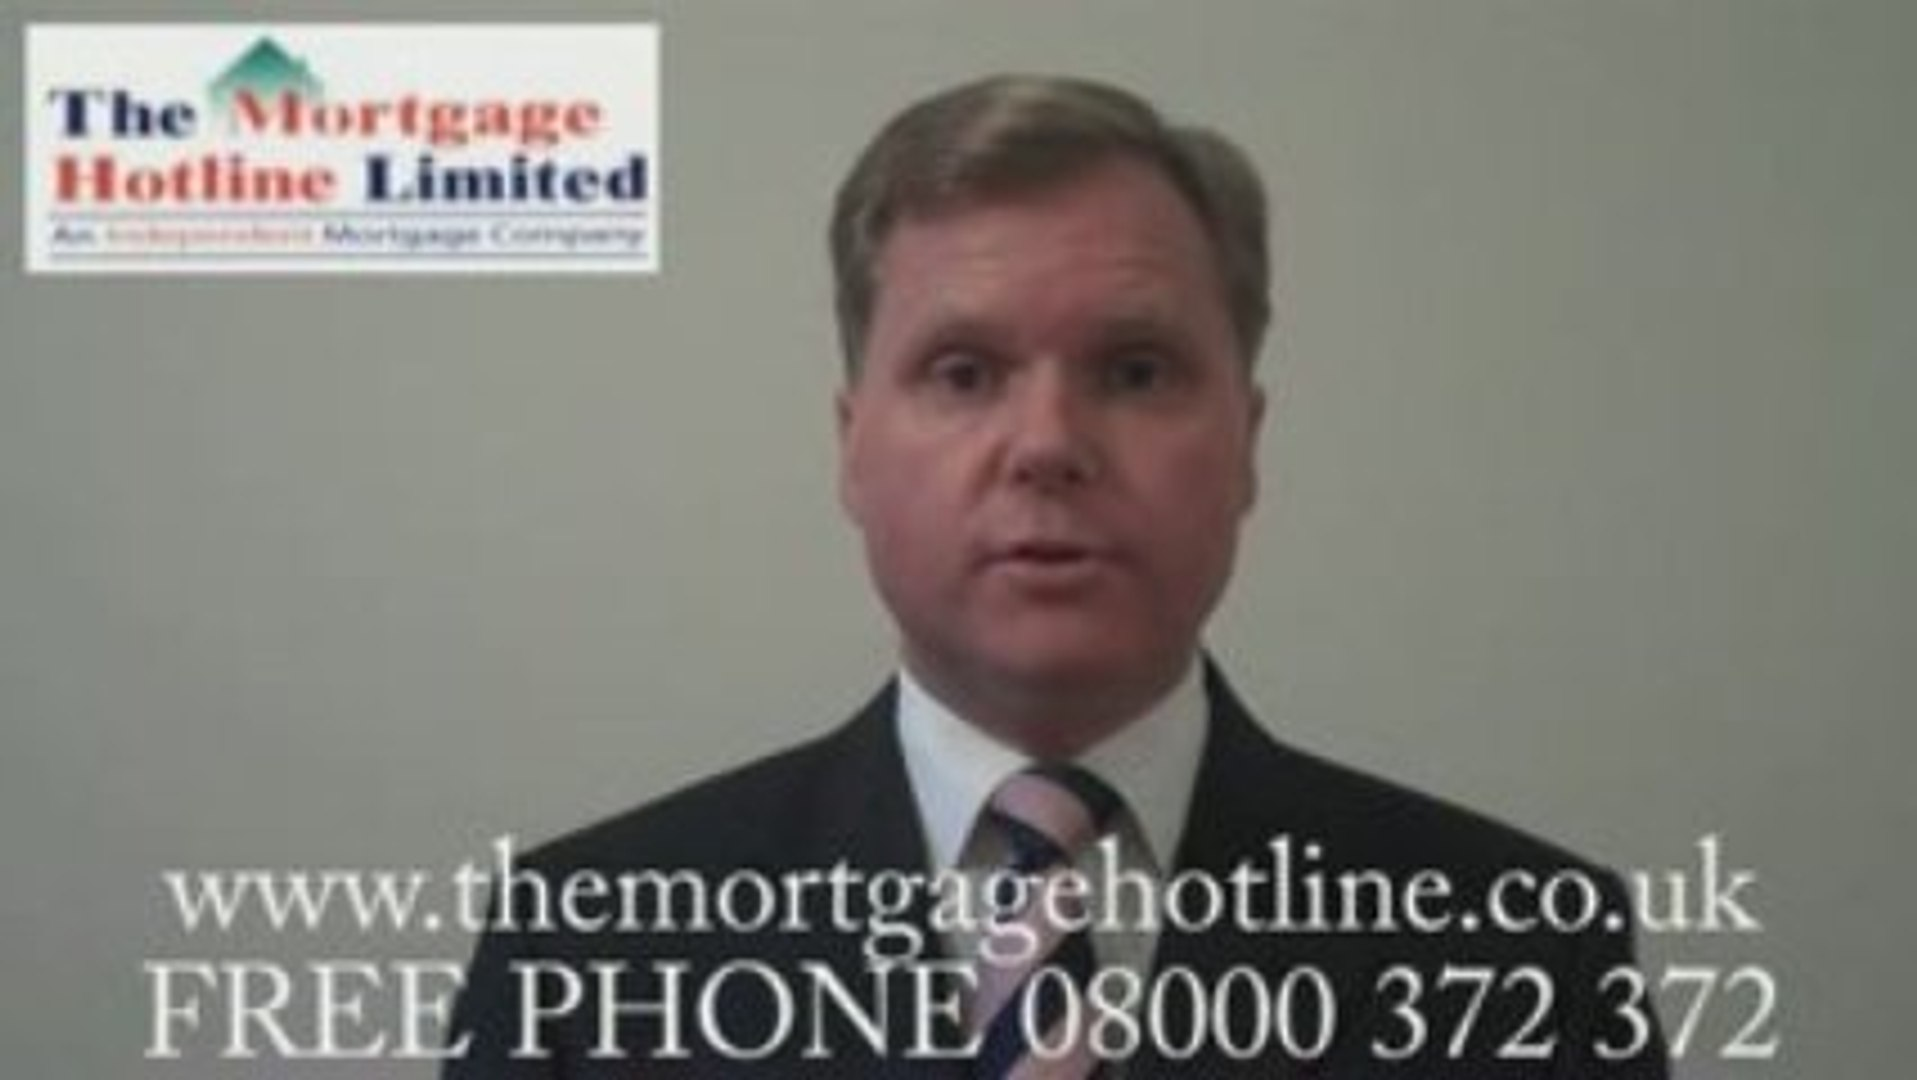 Find A Mortgage Broker In London for mortgage advice